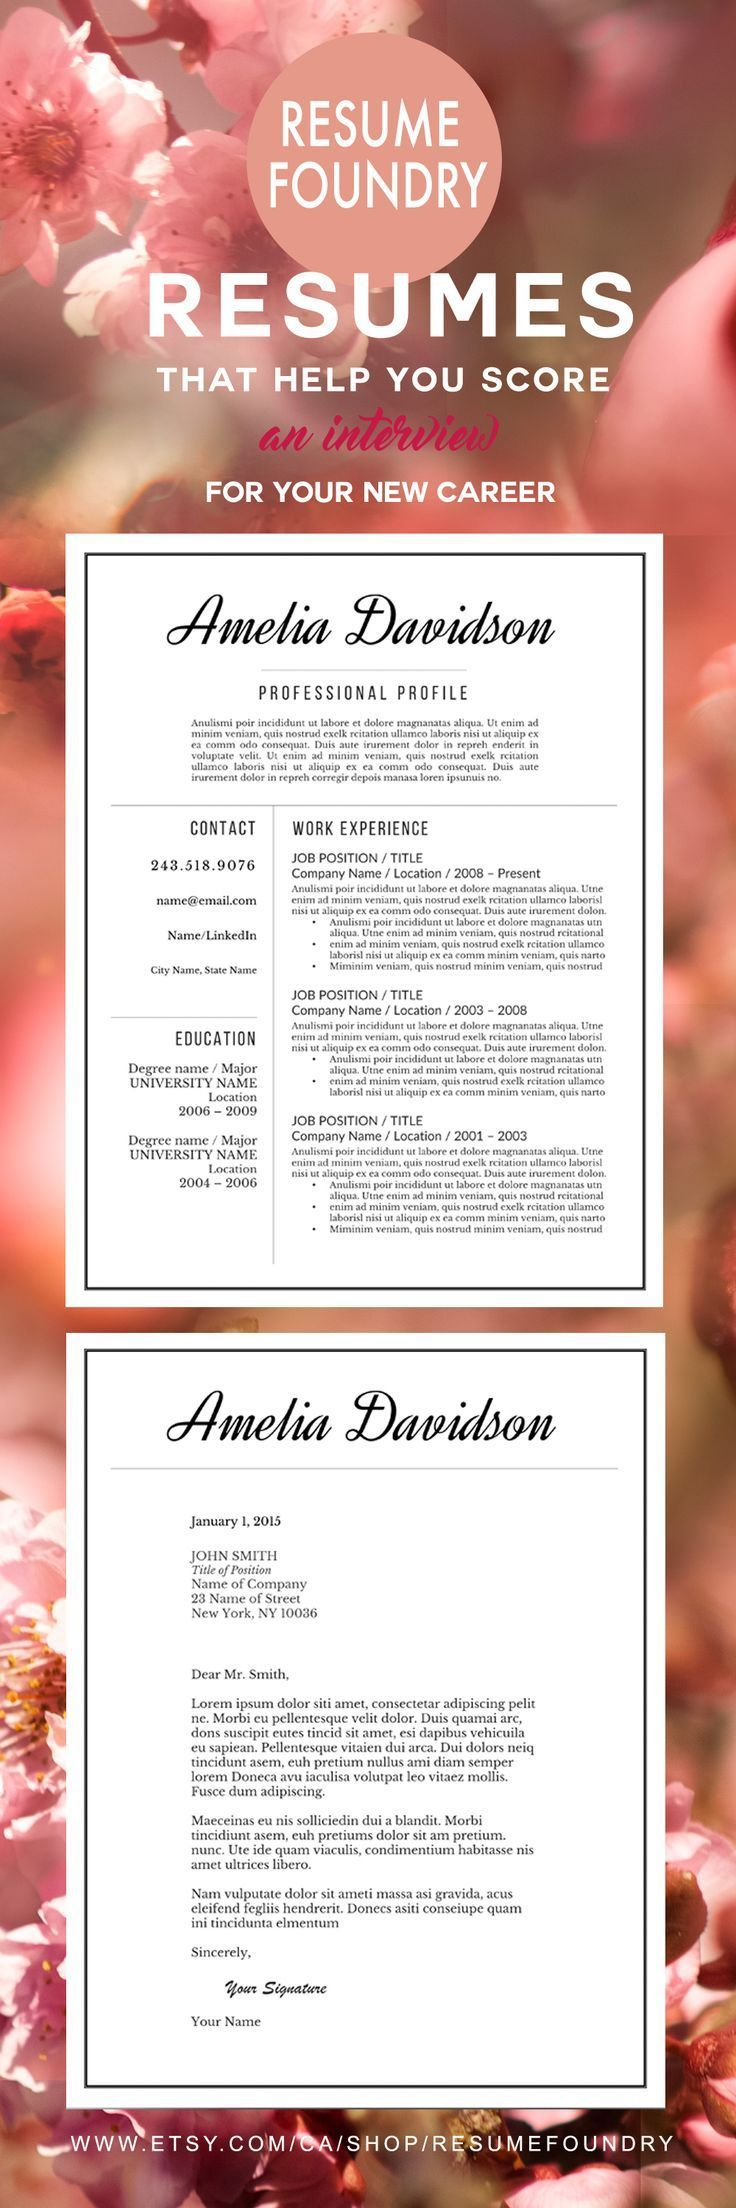 Beautiful resume template from Resume Foundry | Resume Design ...